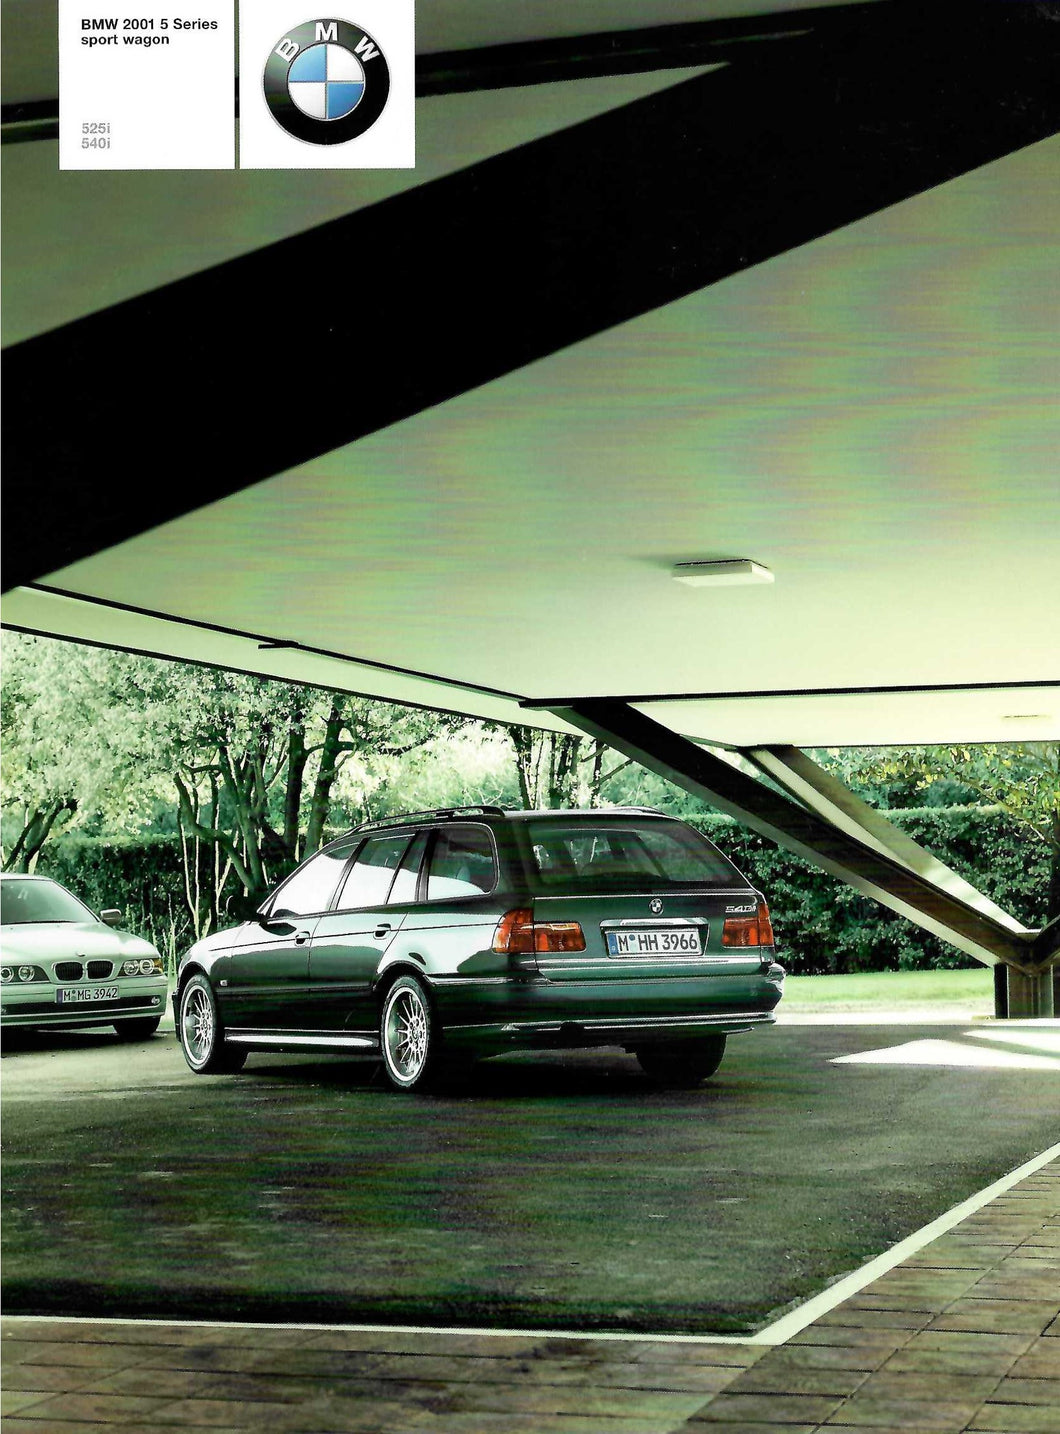 Brochure - BMW 2001 5 -Series Sports Wagon 525i 540i